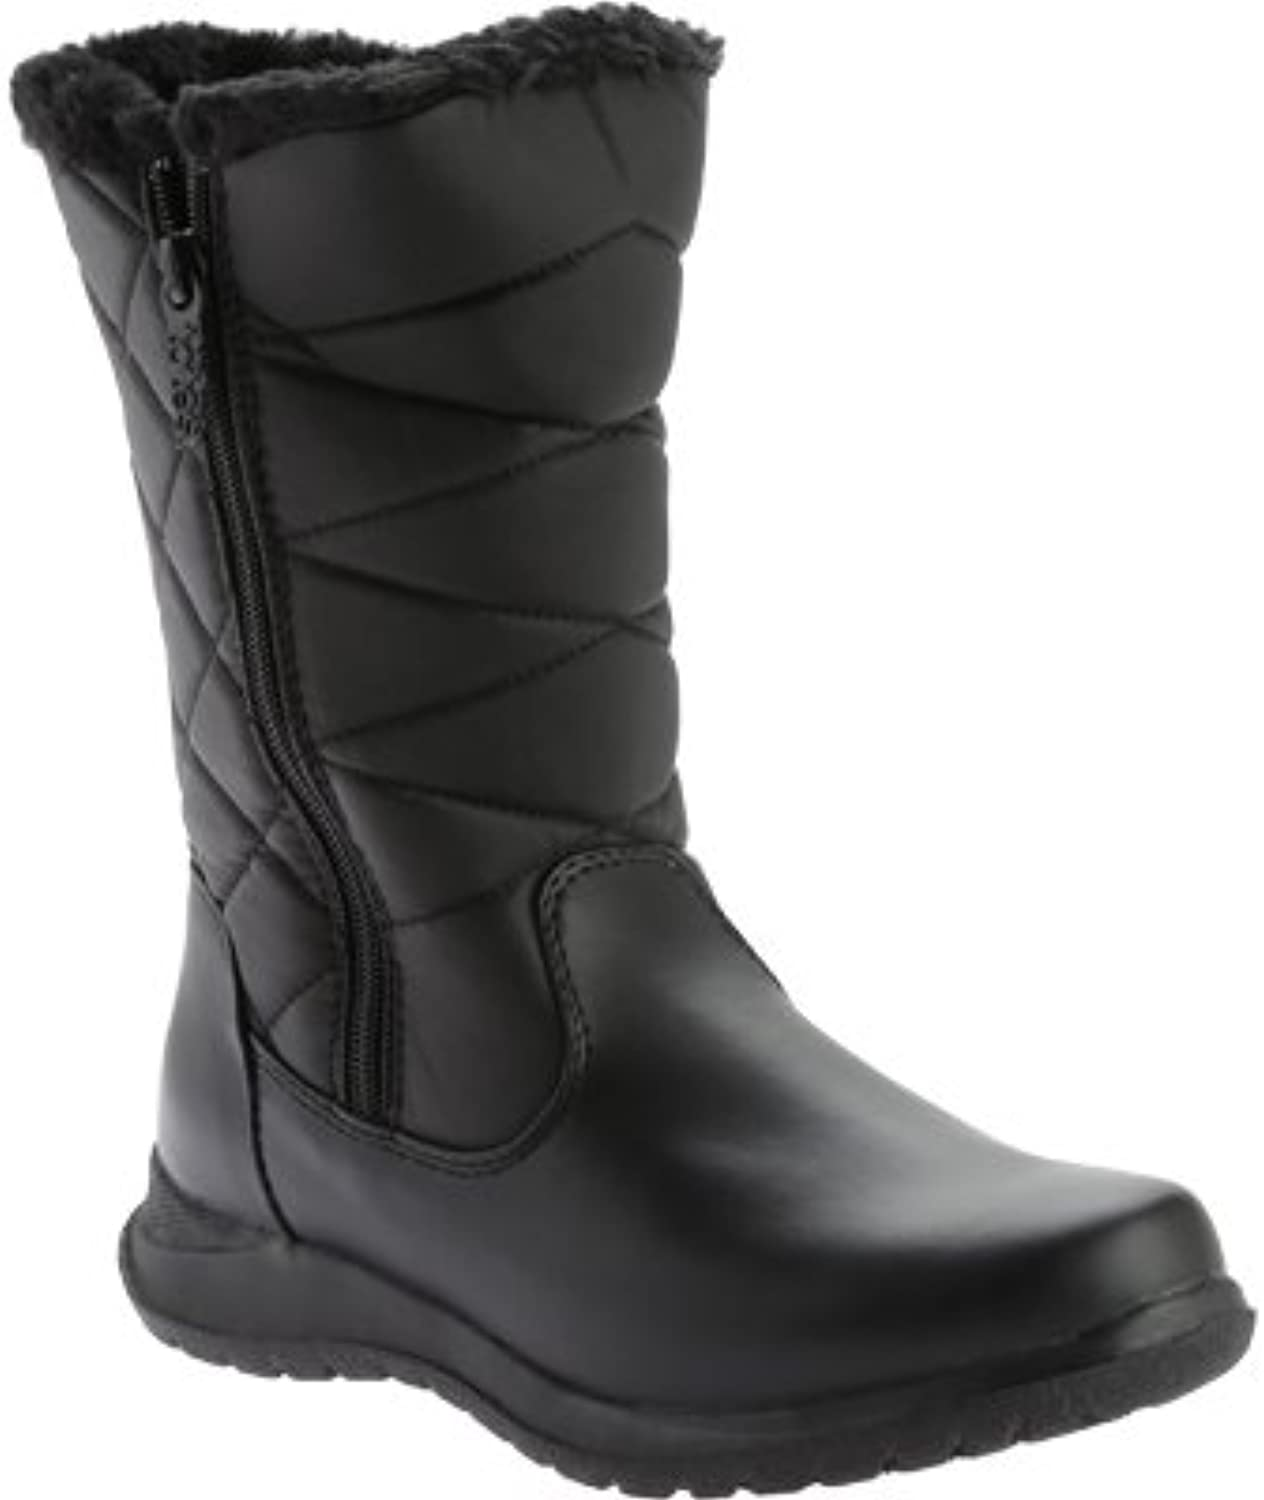 Totes Women's Emily Waterproof Snow Boot